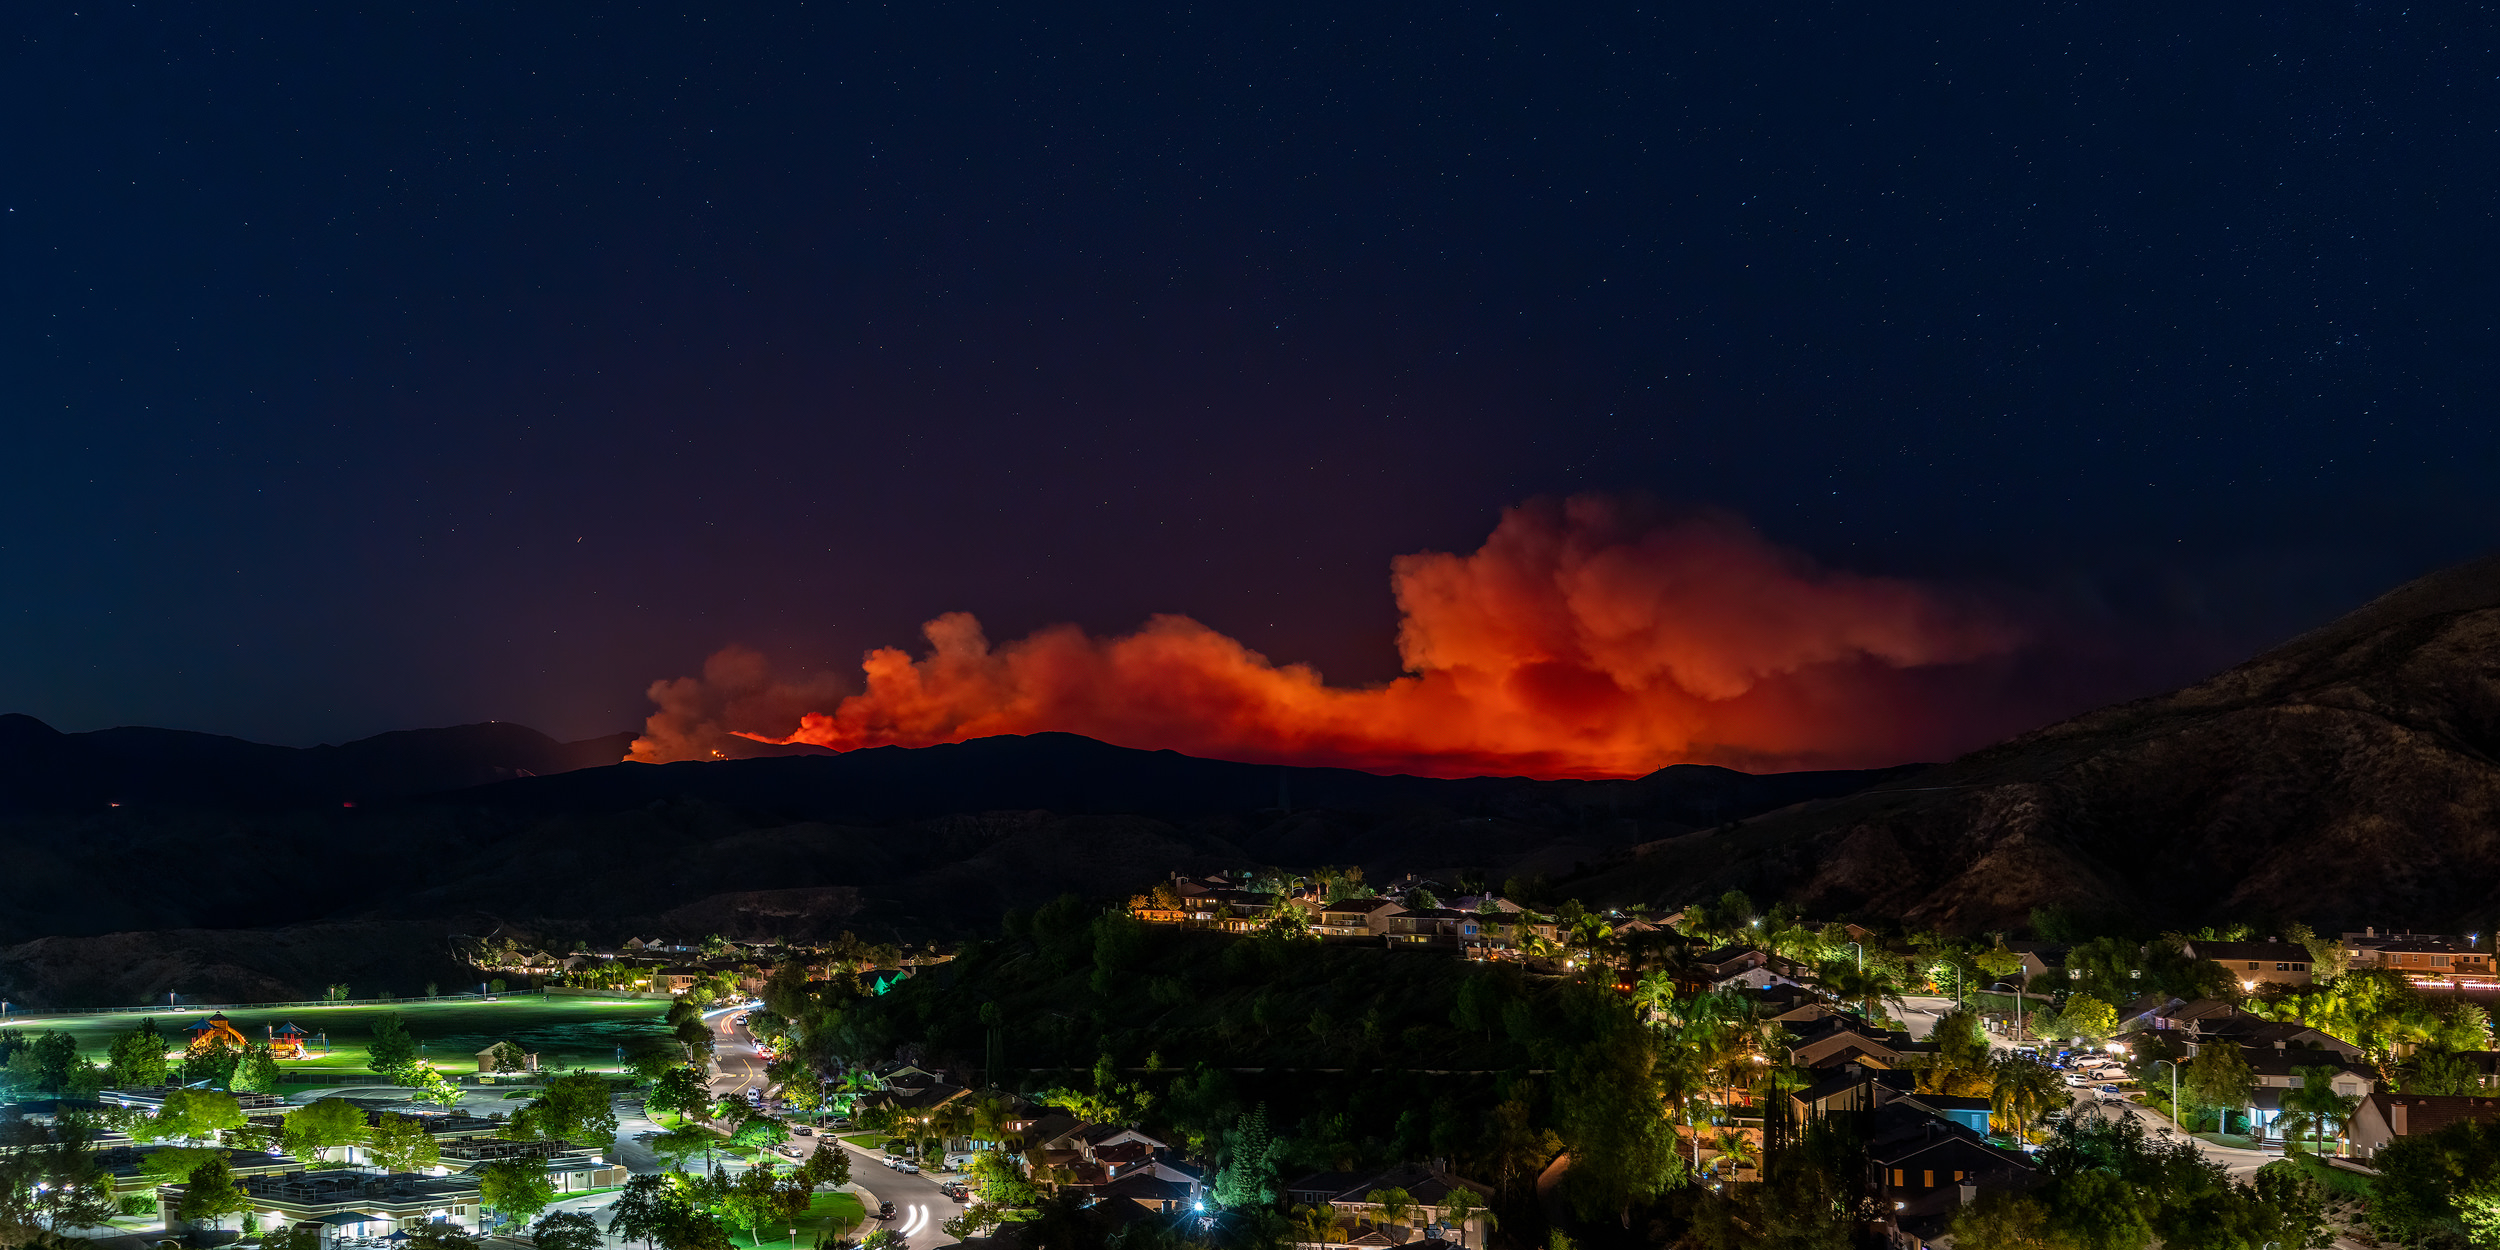 The #lakefire at night